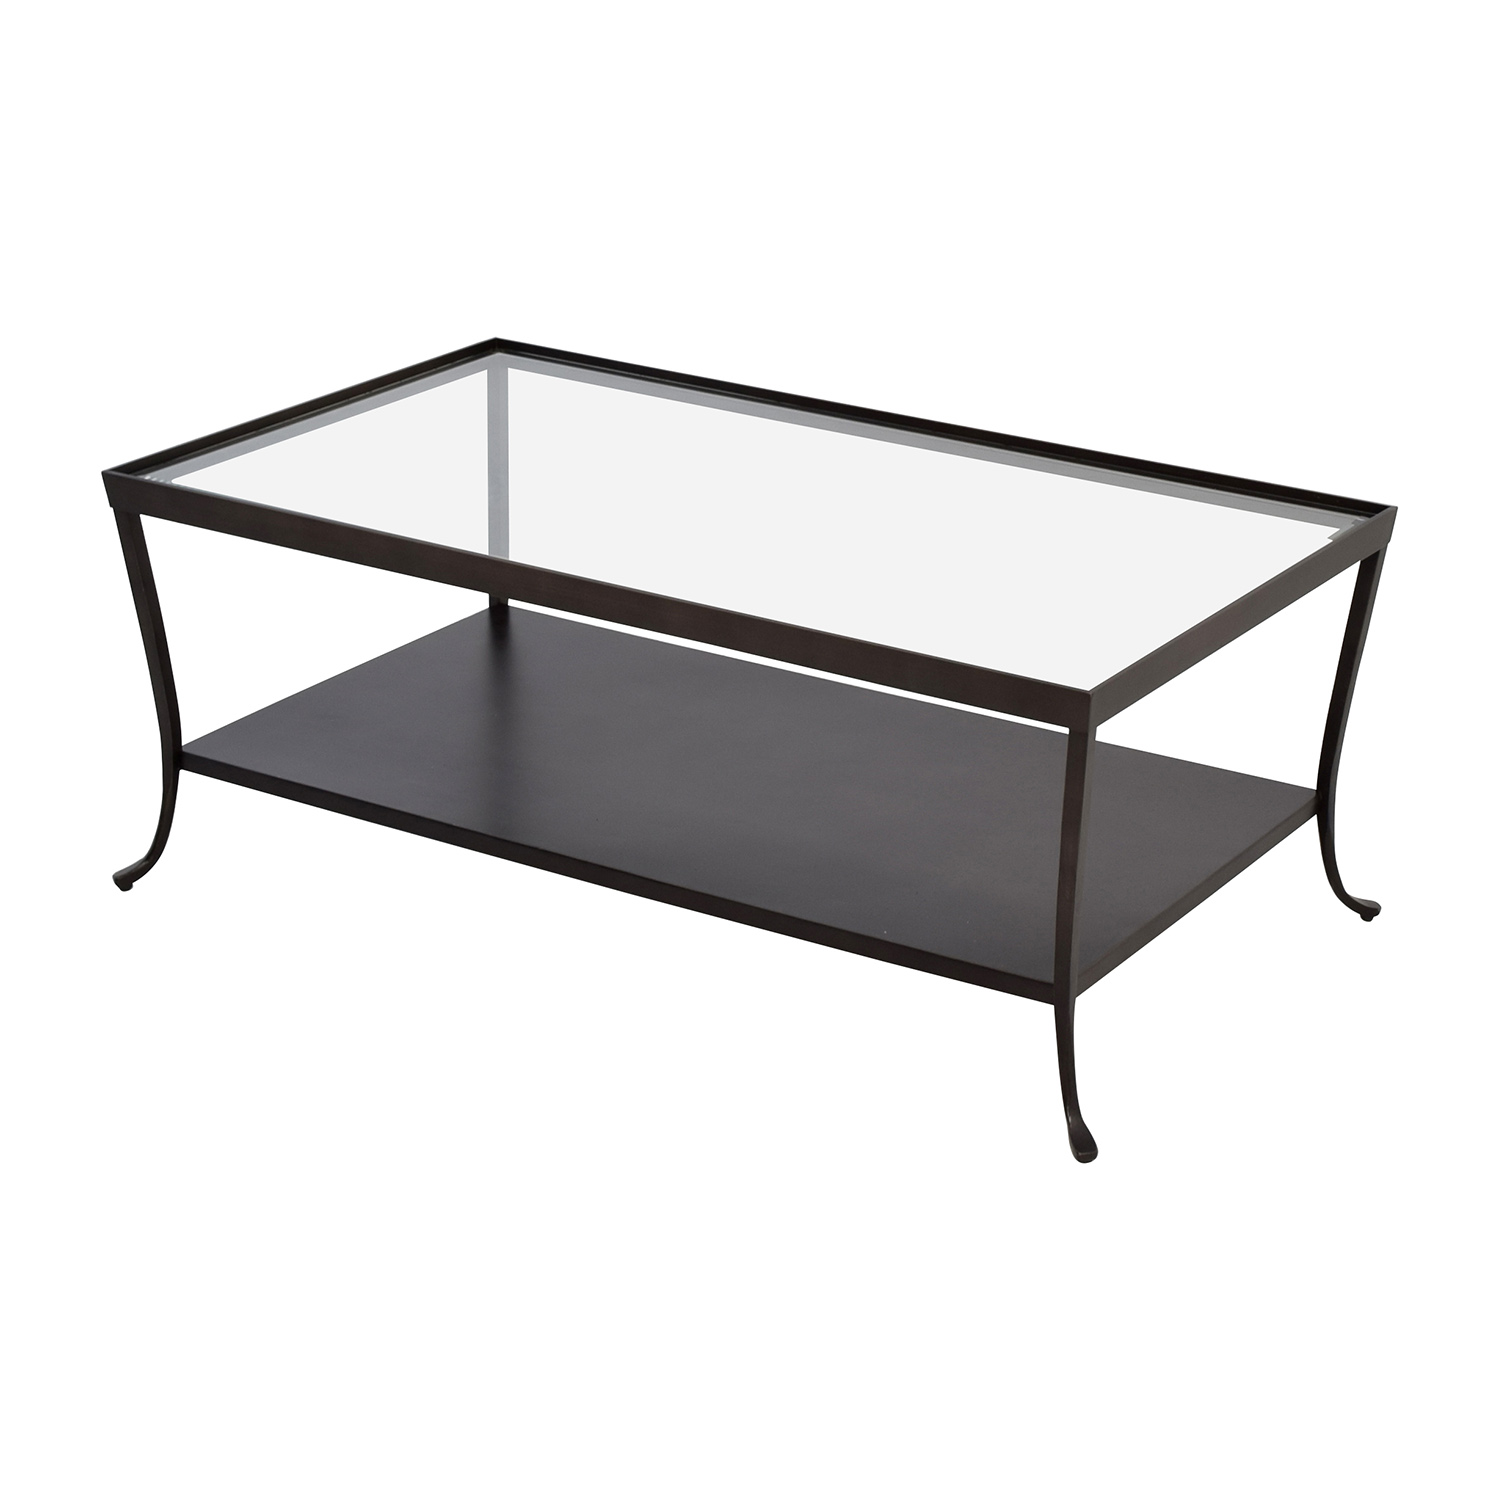 84 off metal base with glass top coffee table tables Glass coffee table base